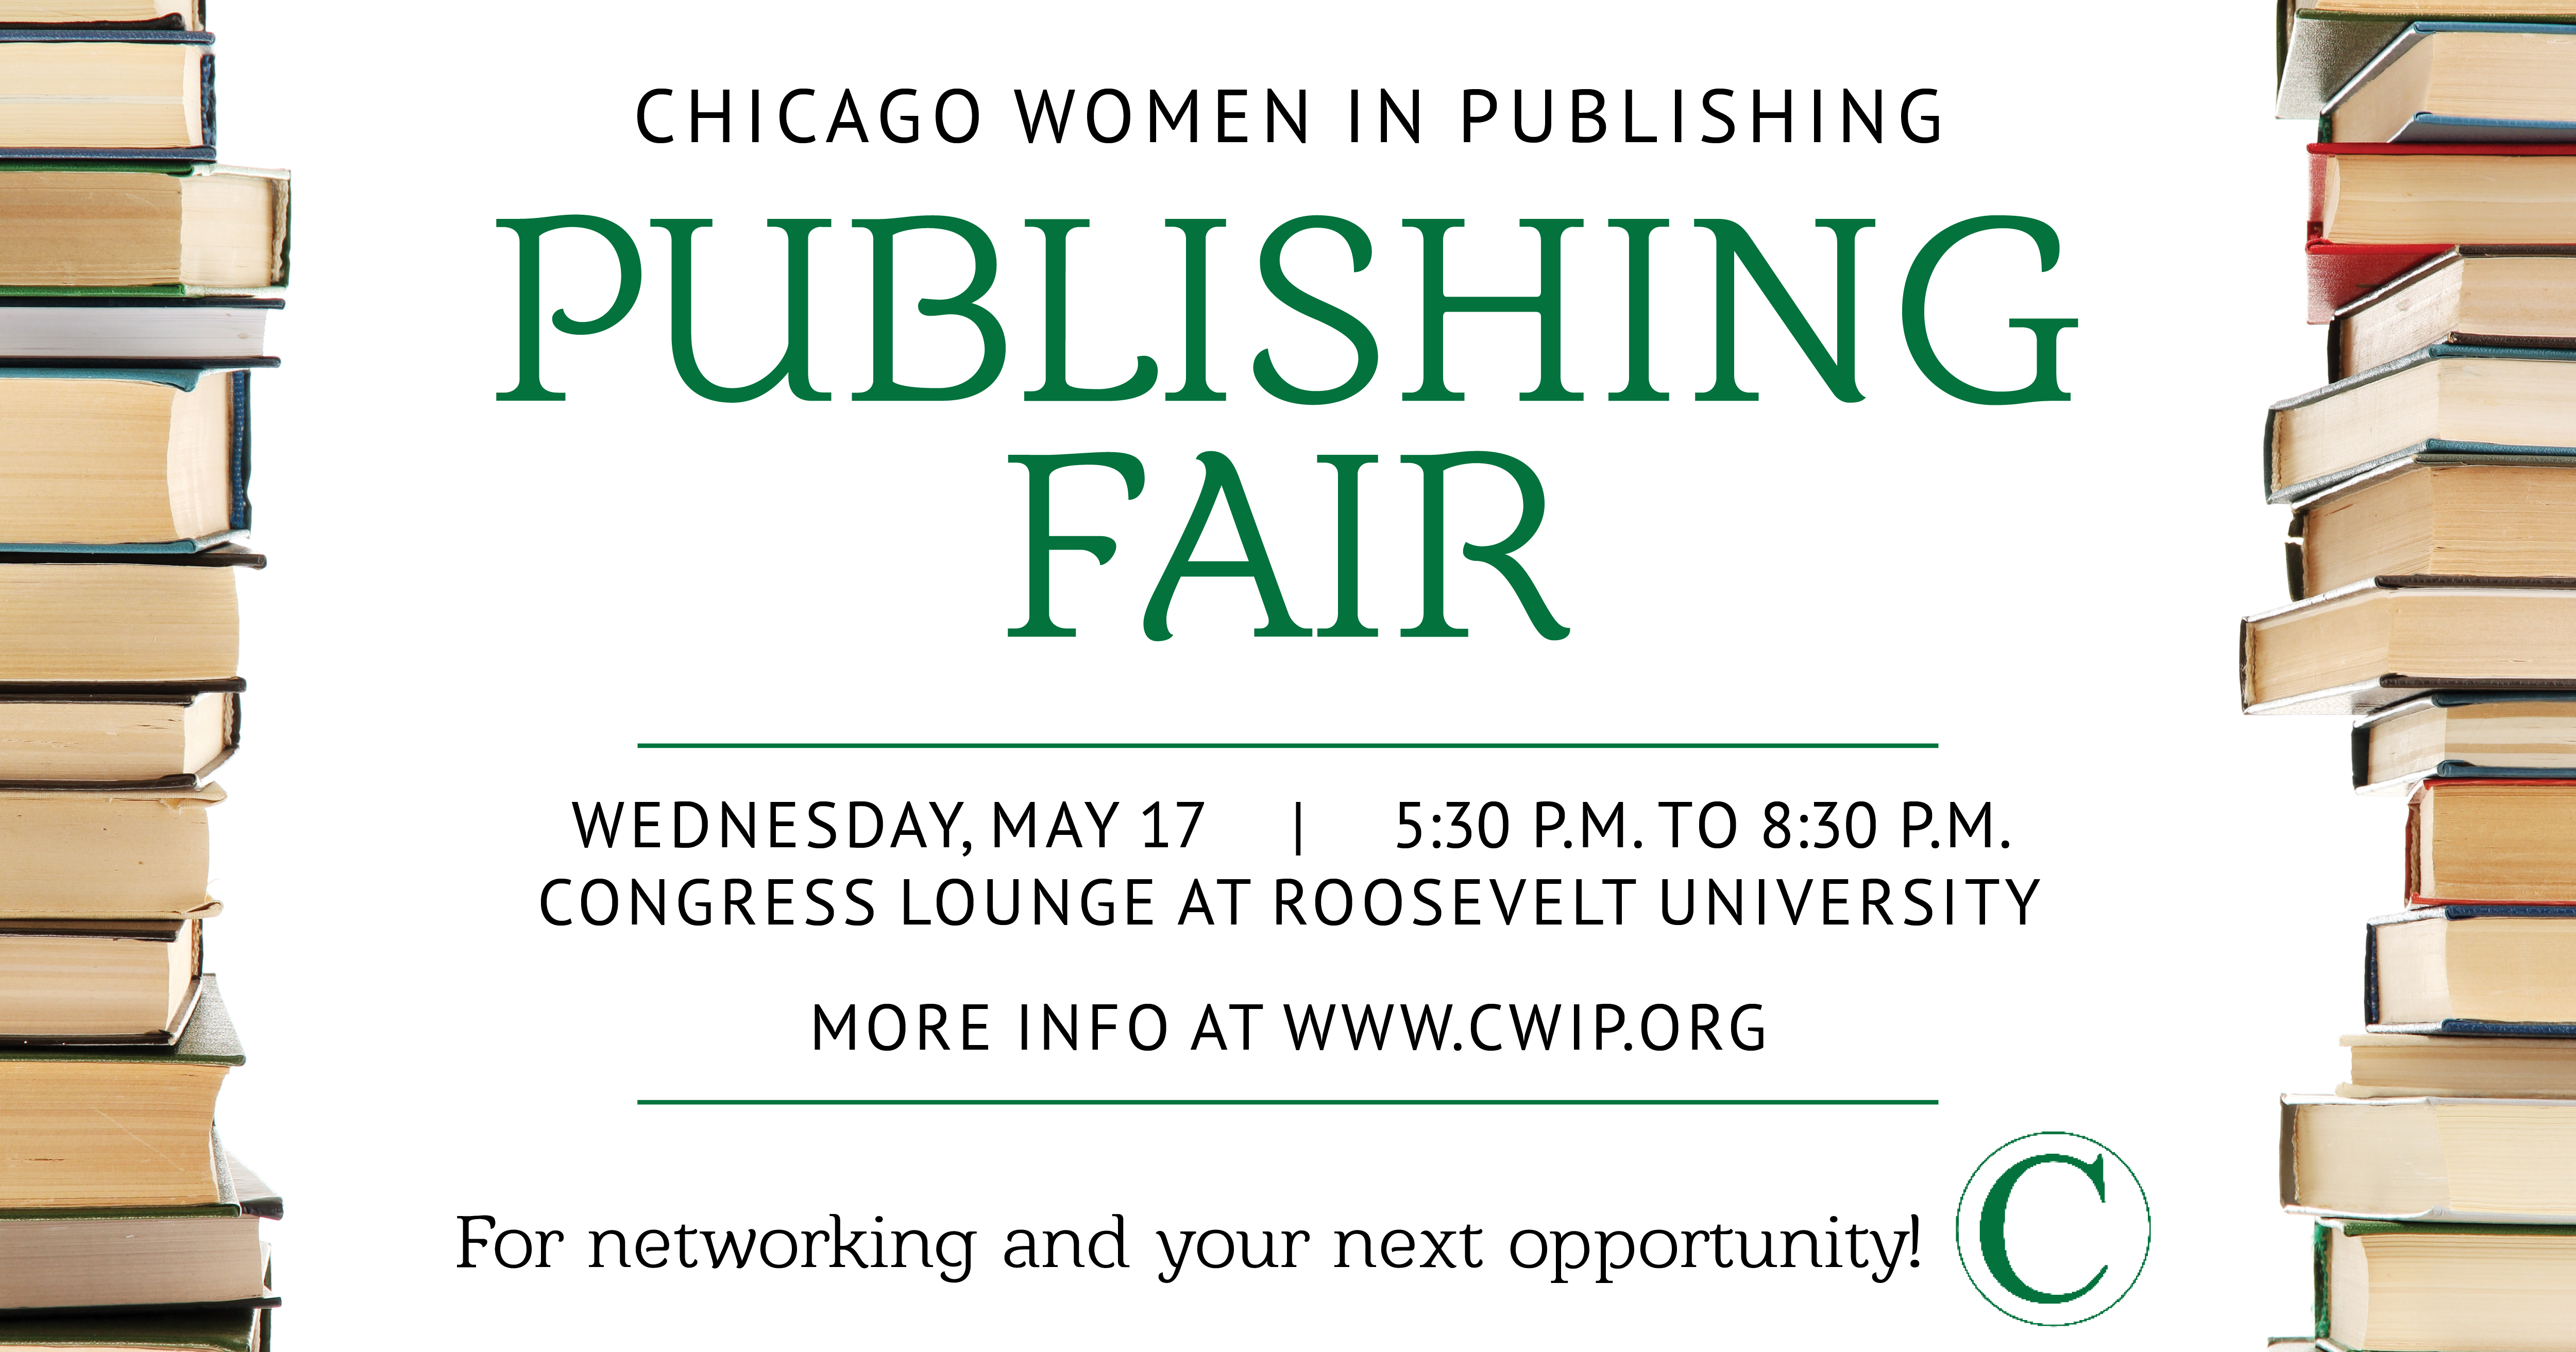 Network with Chicago's Publishing Professionals at CWIP's Publishing Fair.